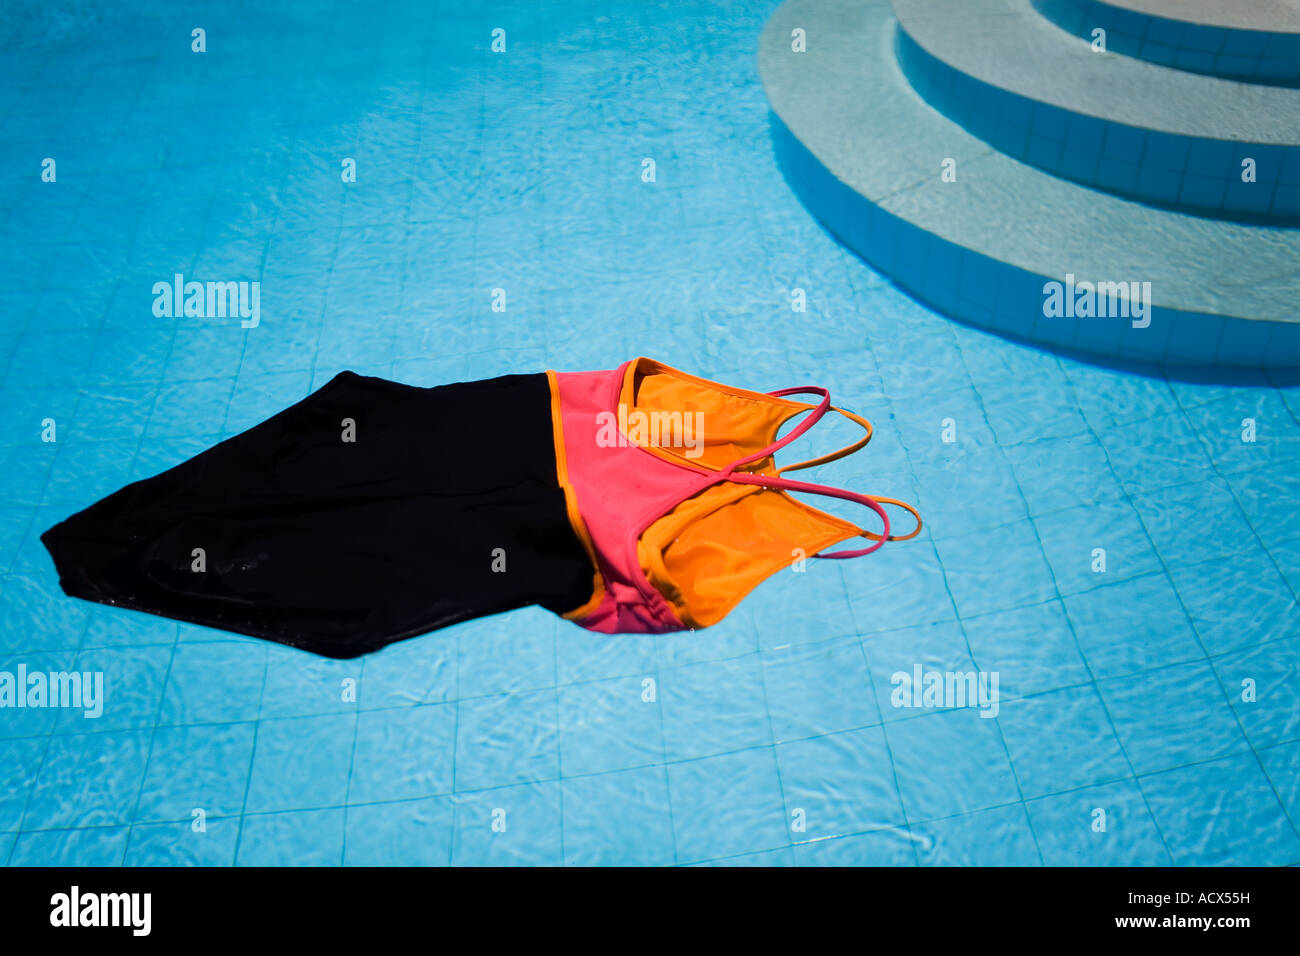 Swimsuit floating in a swimming pool at a villa - Stock Image